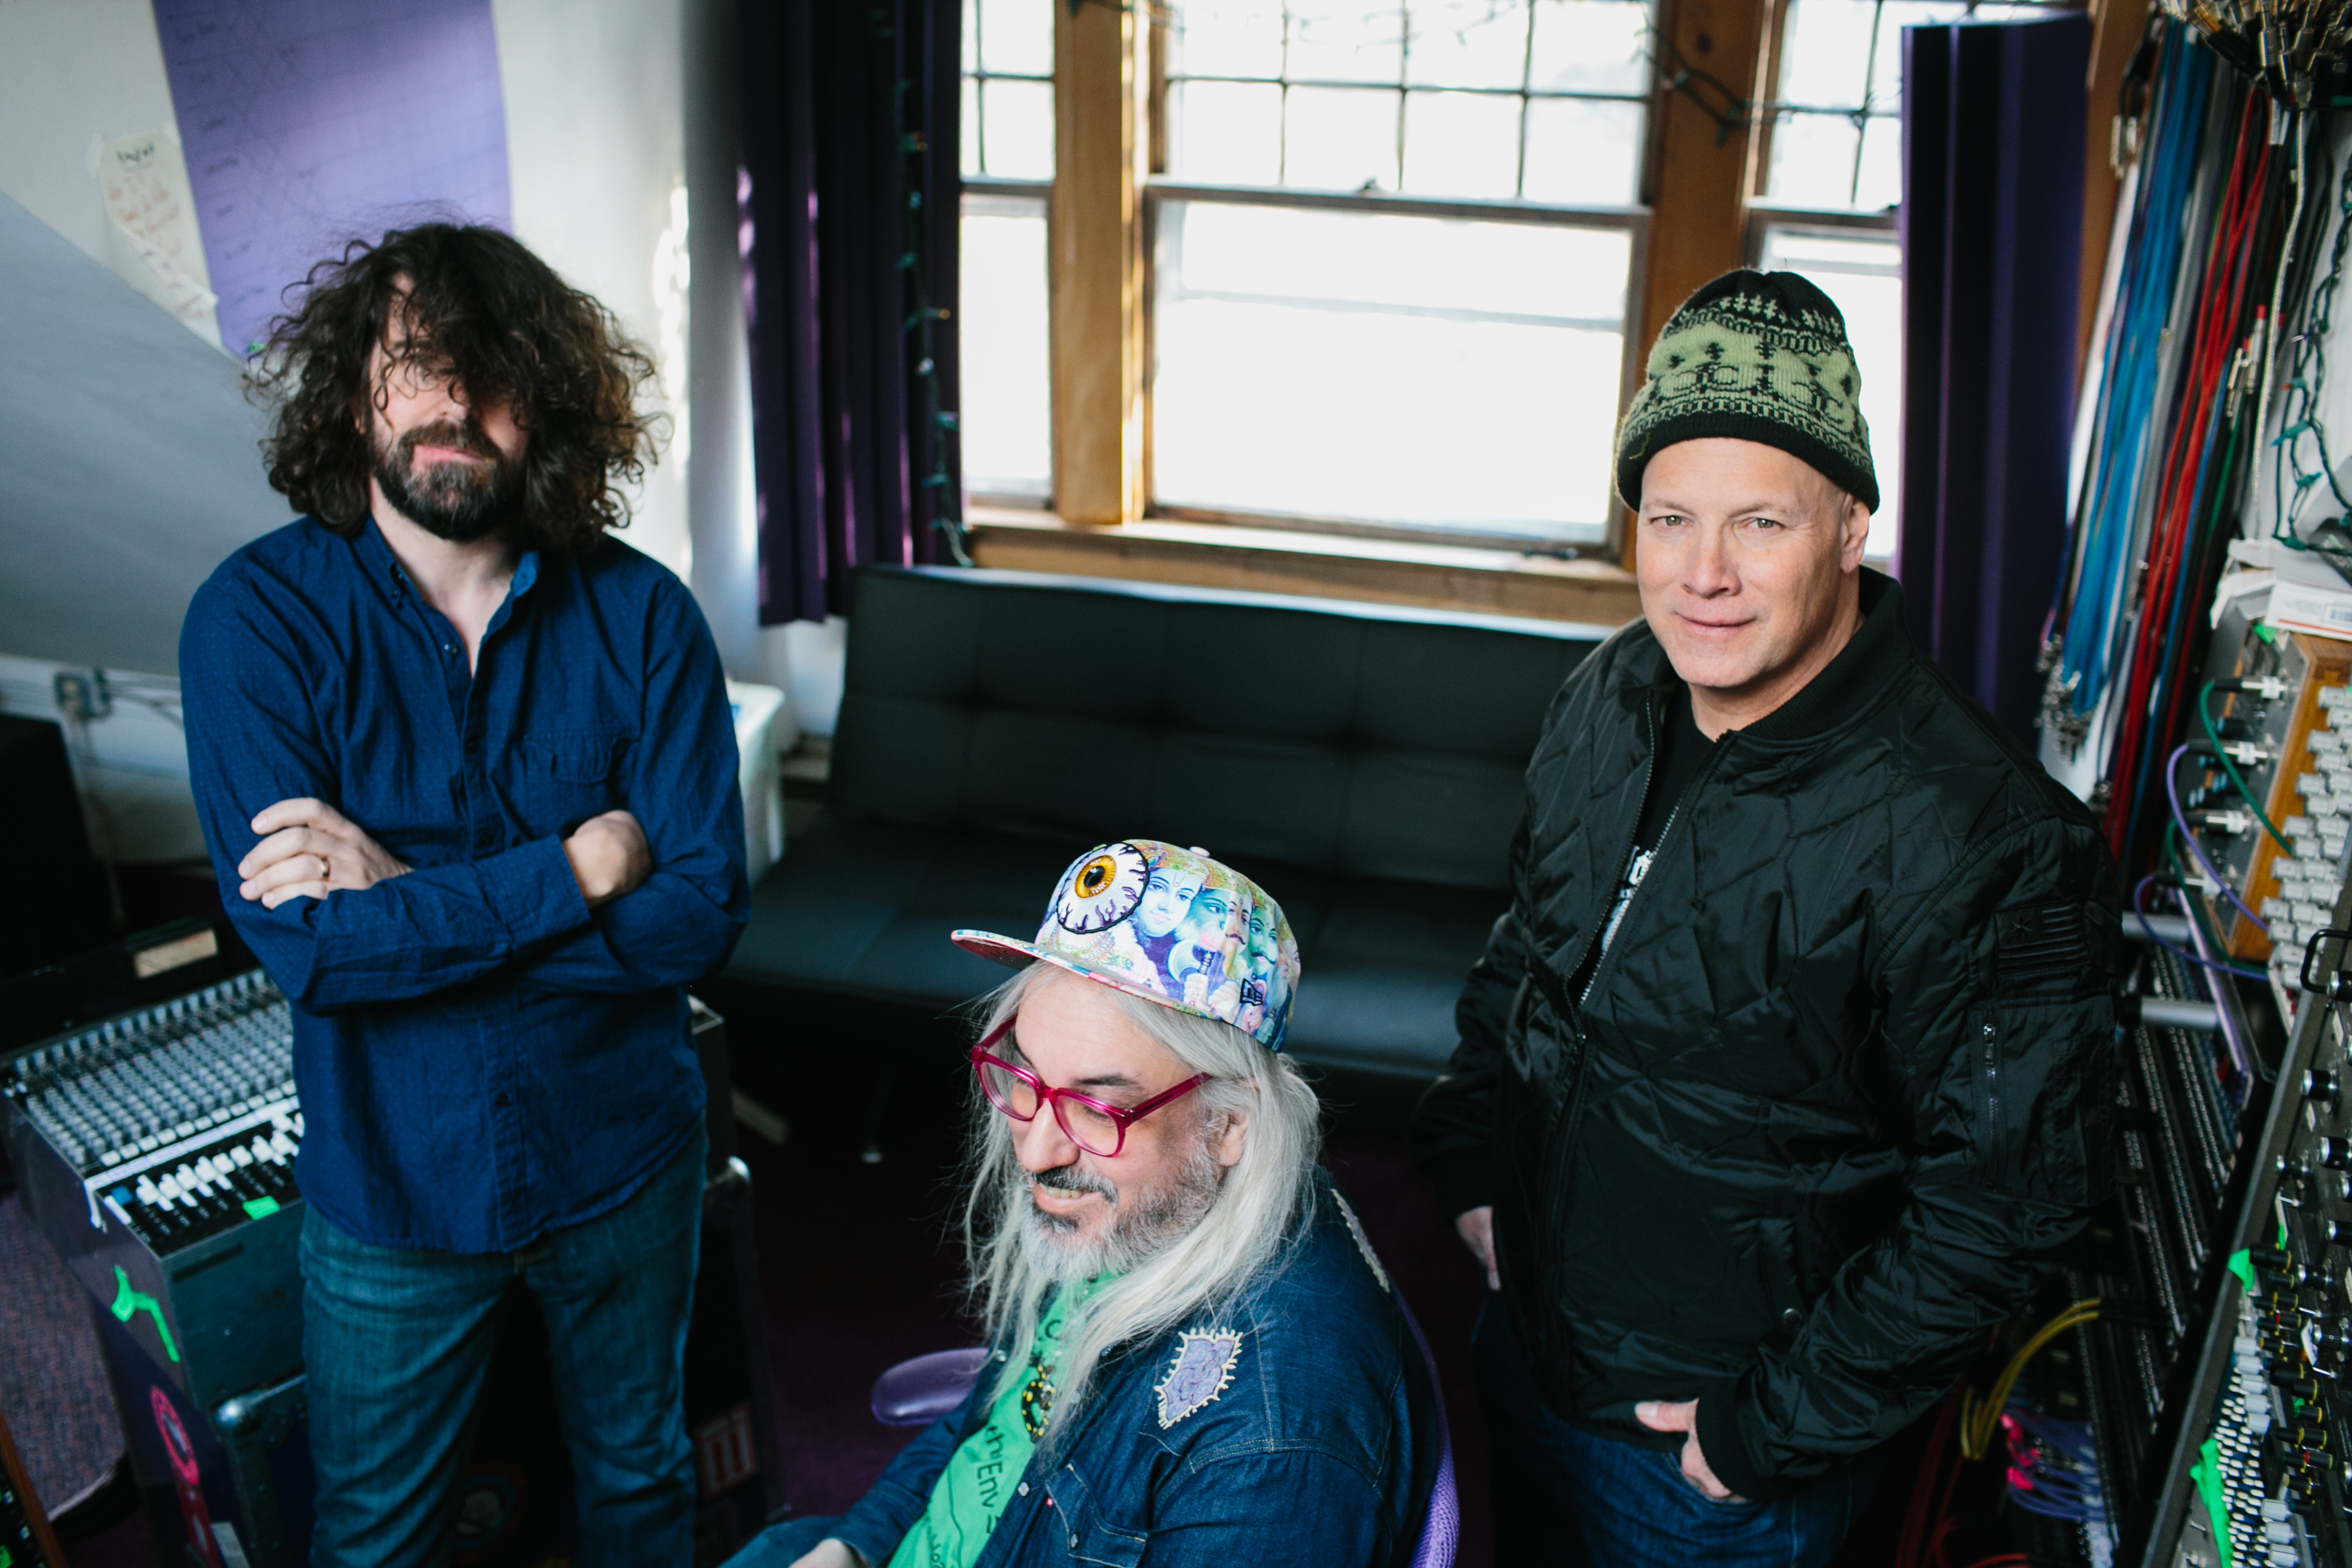 dinosaur jr pr sentieren neues album in k ln ruhrbarone. Black Bedroom Furniture Sets. Home Design Ideas